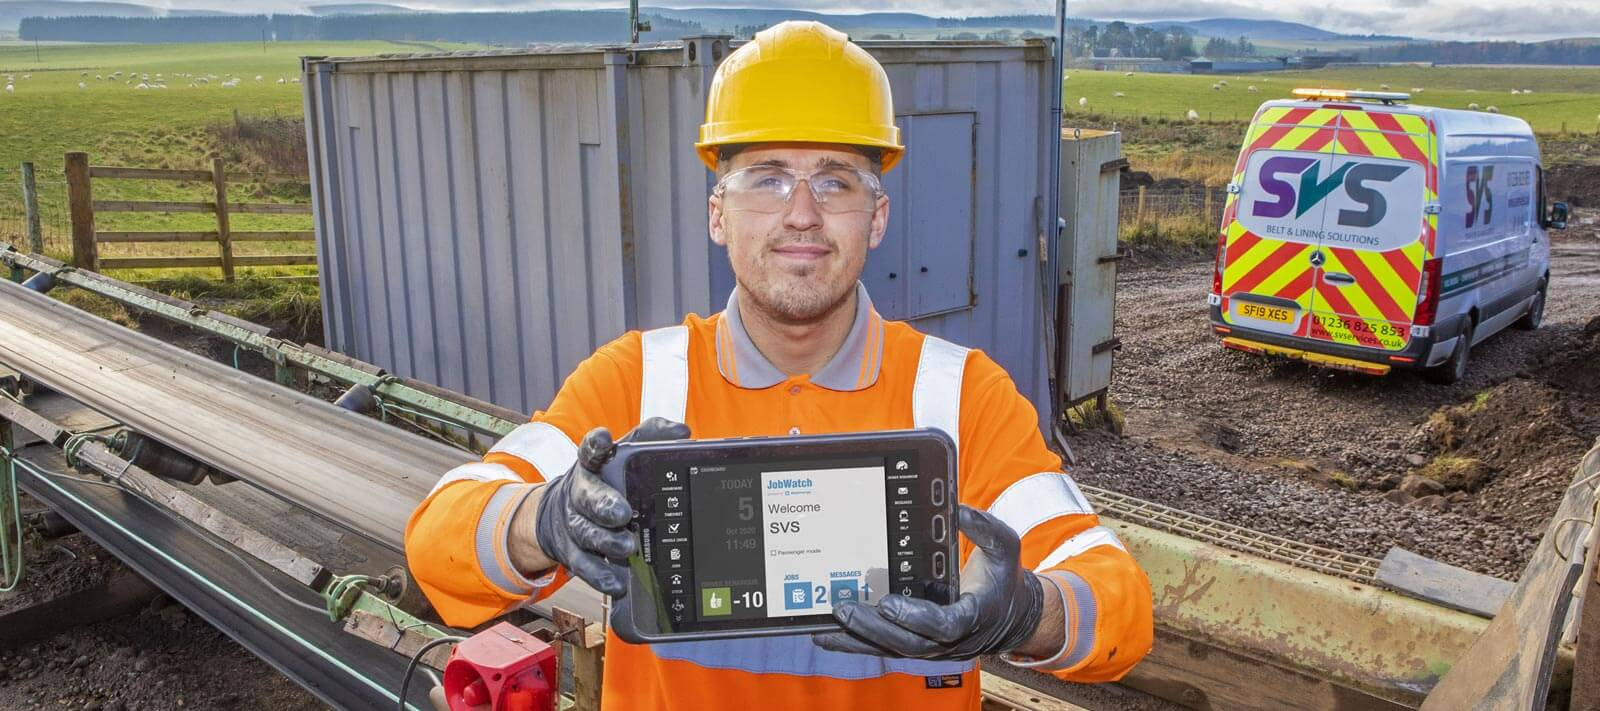 SVS employee using a JobWatch Mobile device